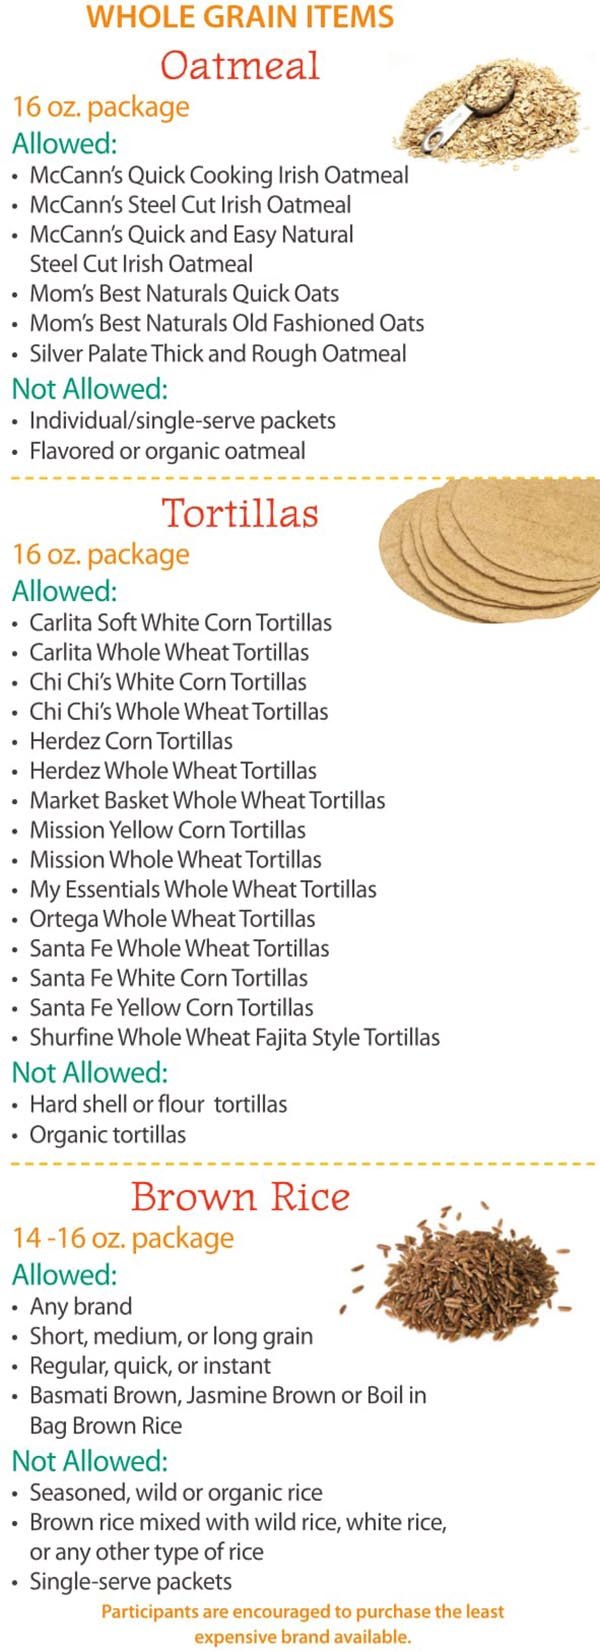 Maine WIC Food List Whole Grain, Oatmeal, Tortillas and Brown Rice